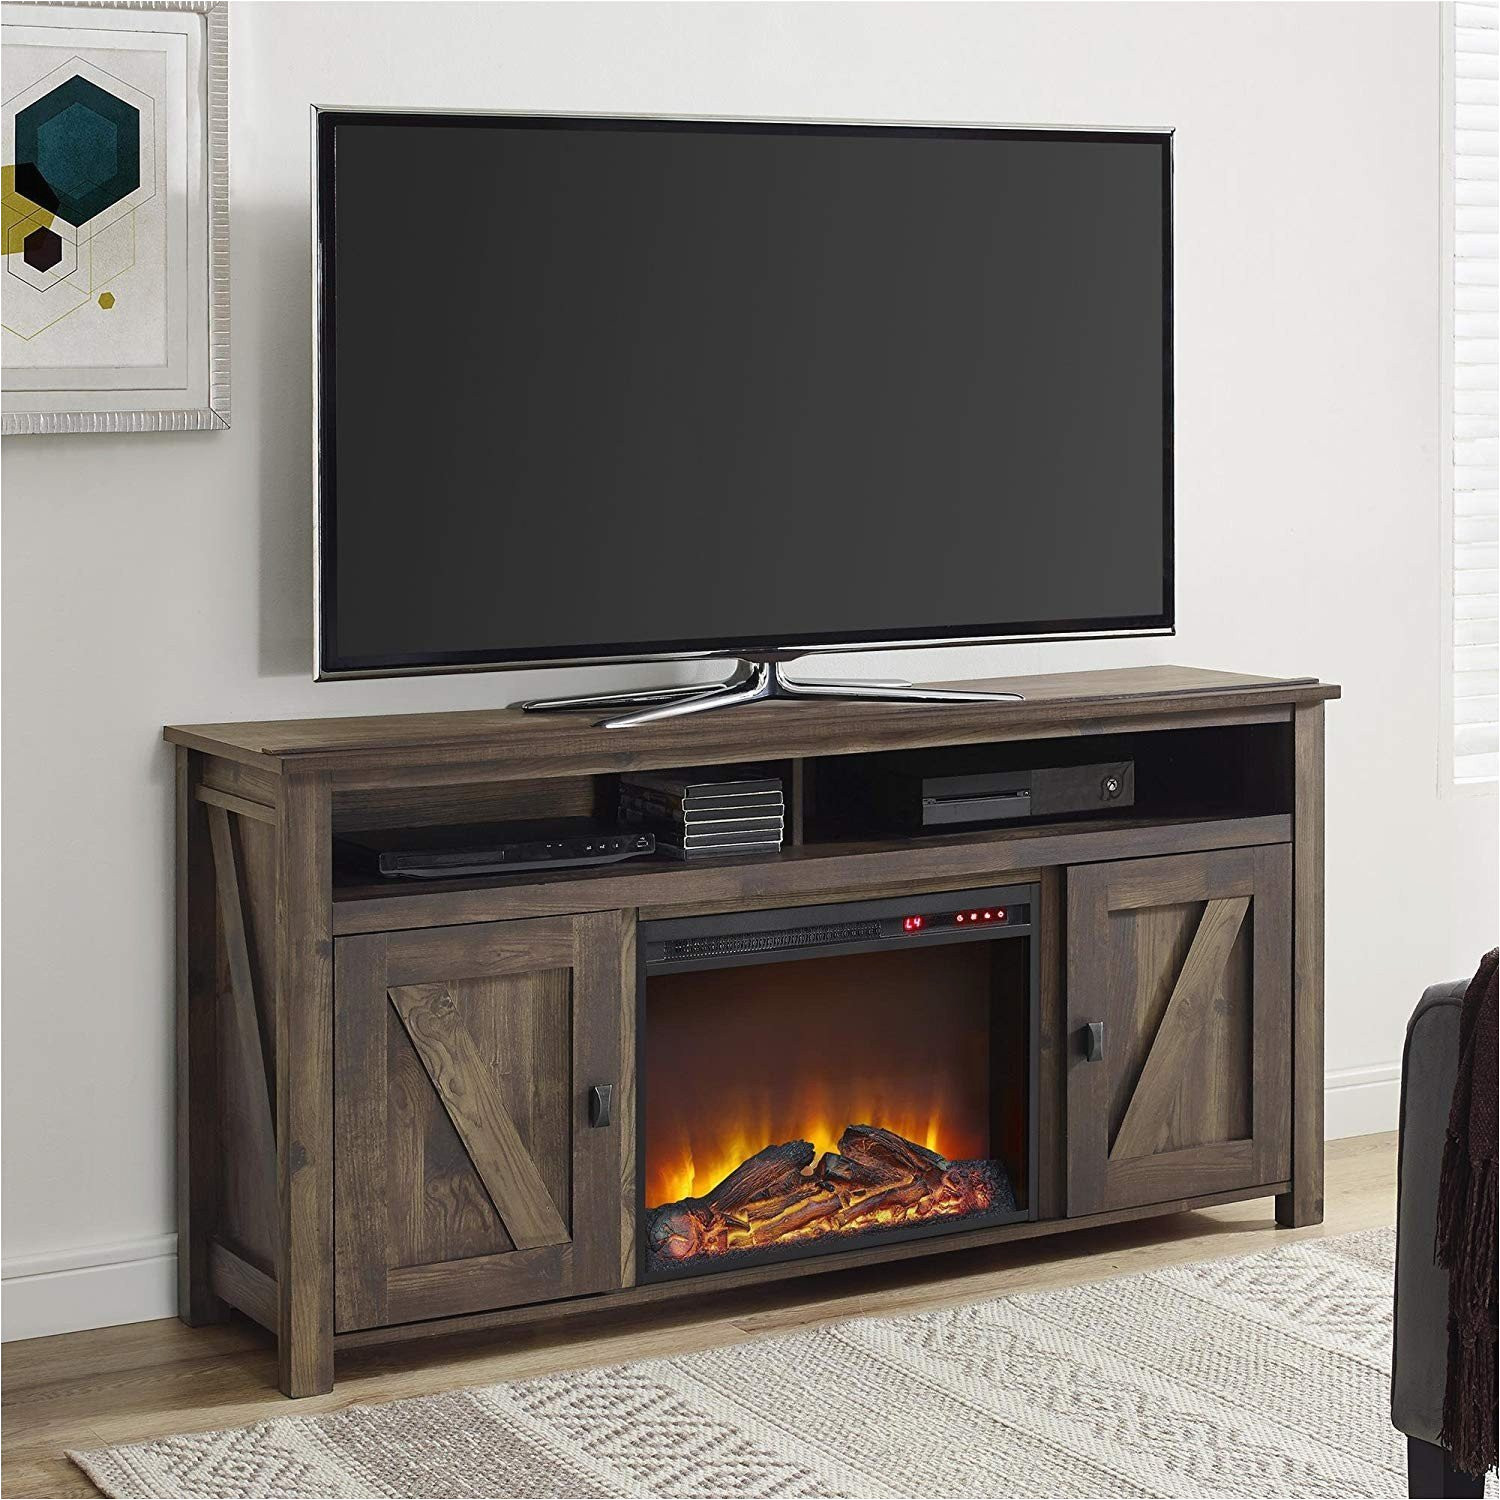 Ember Hearth Electric Fireplace Media Console Costco Costco Media